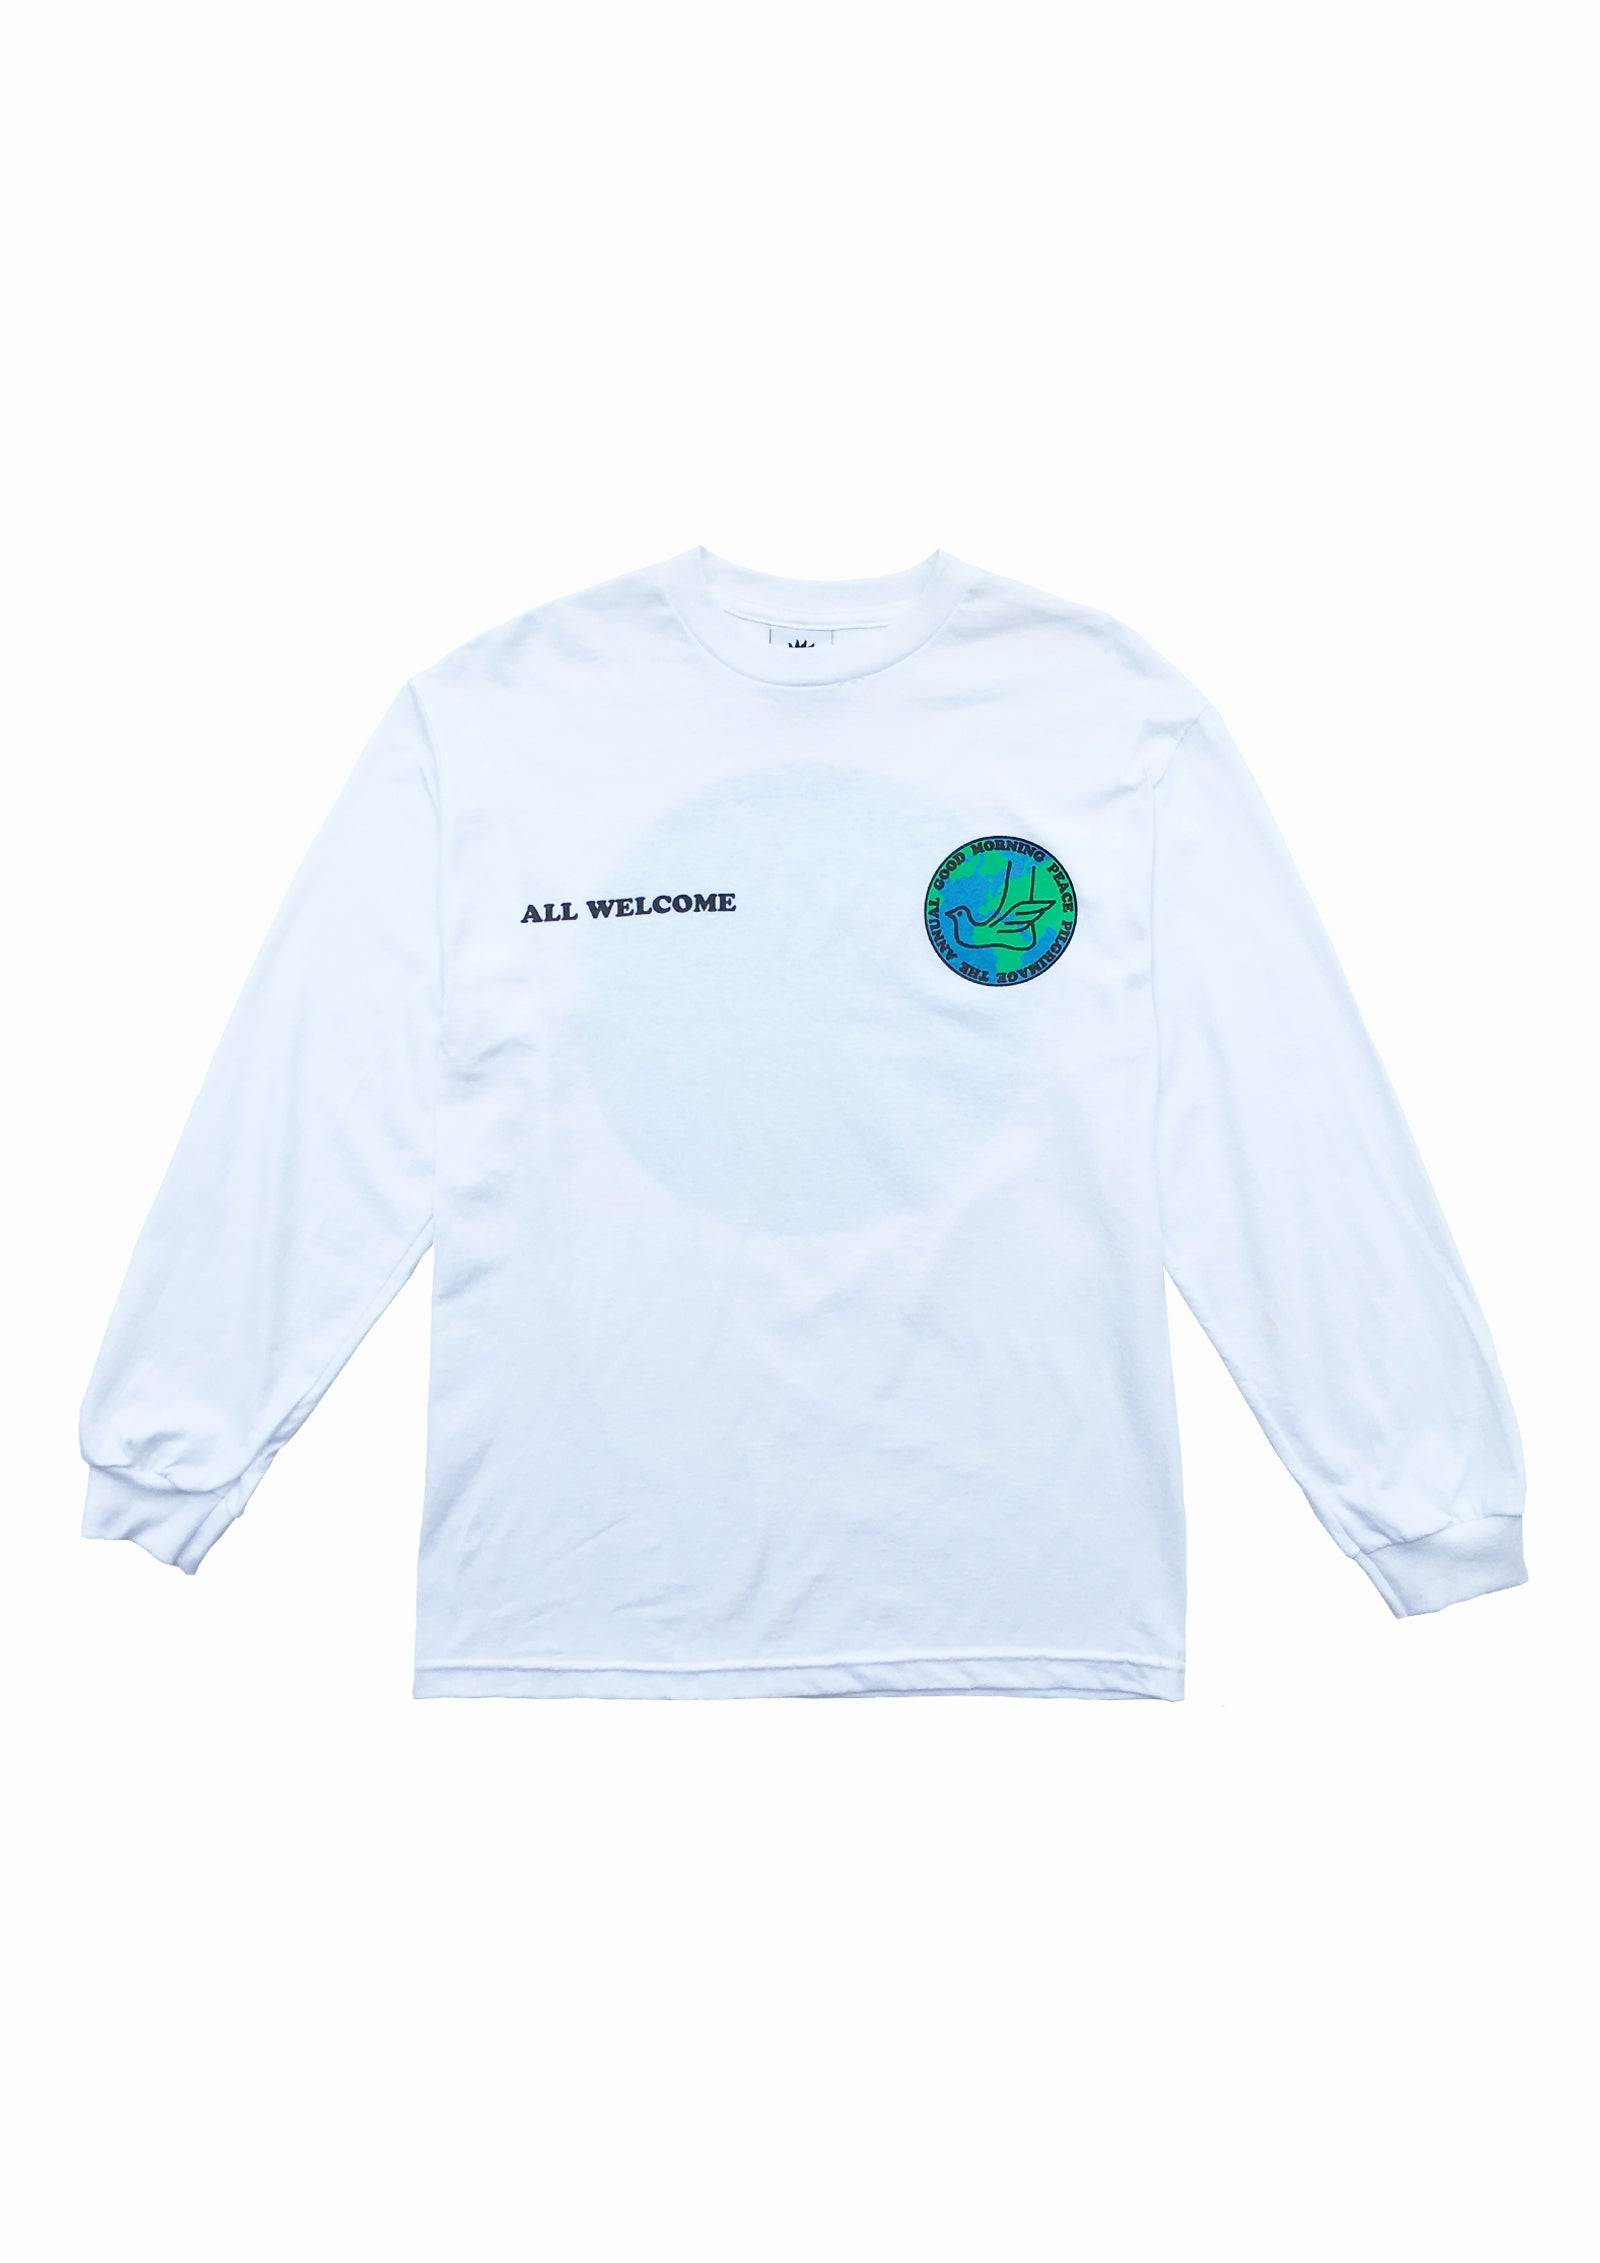 PEACE PILGRIMAGE LS TEE - WHITE